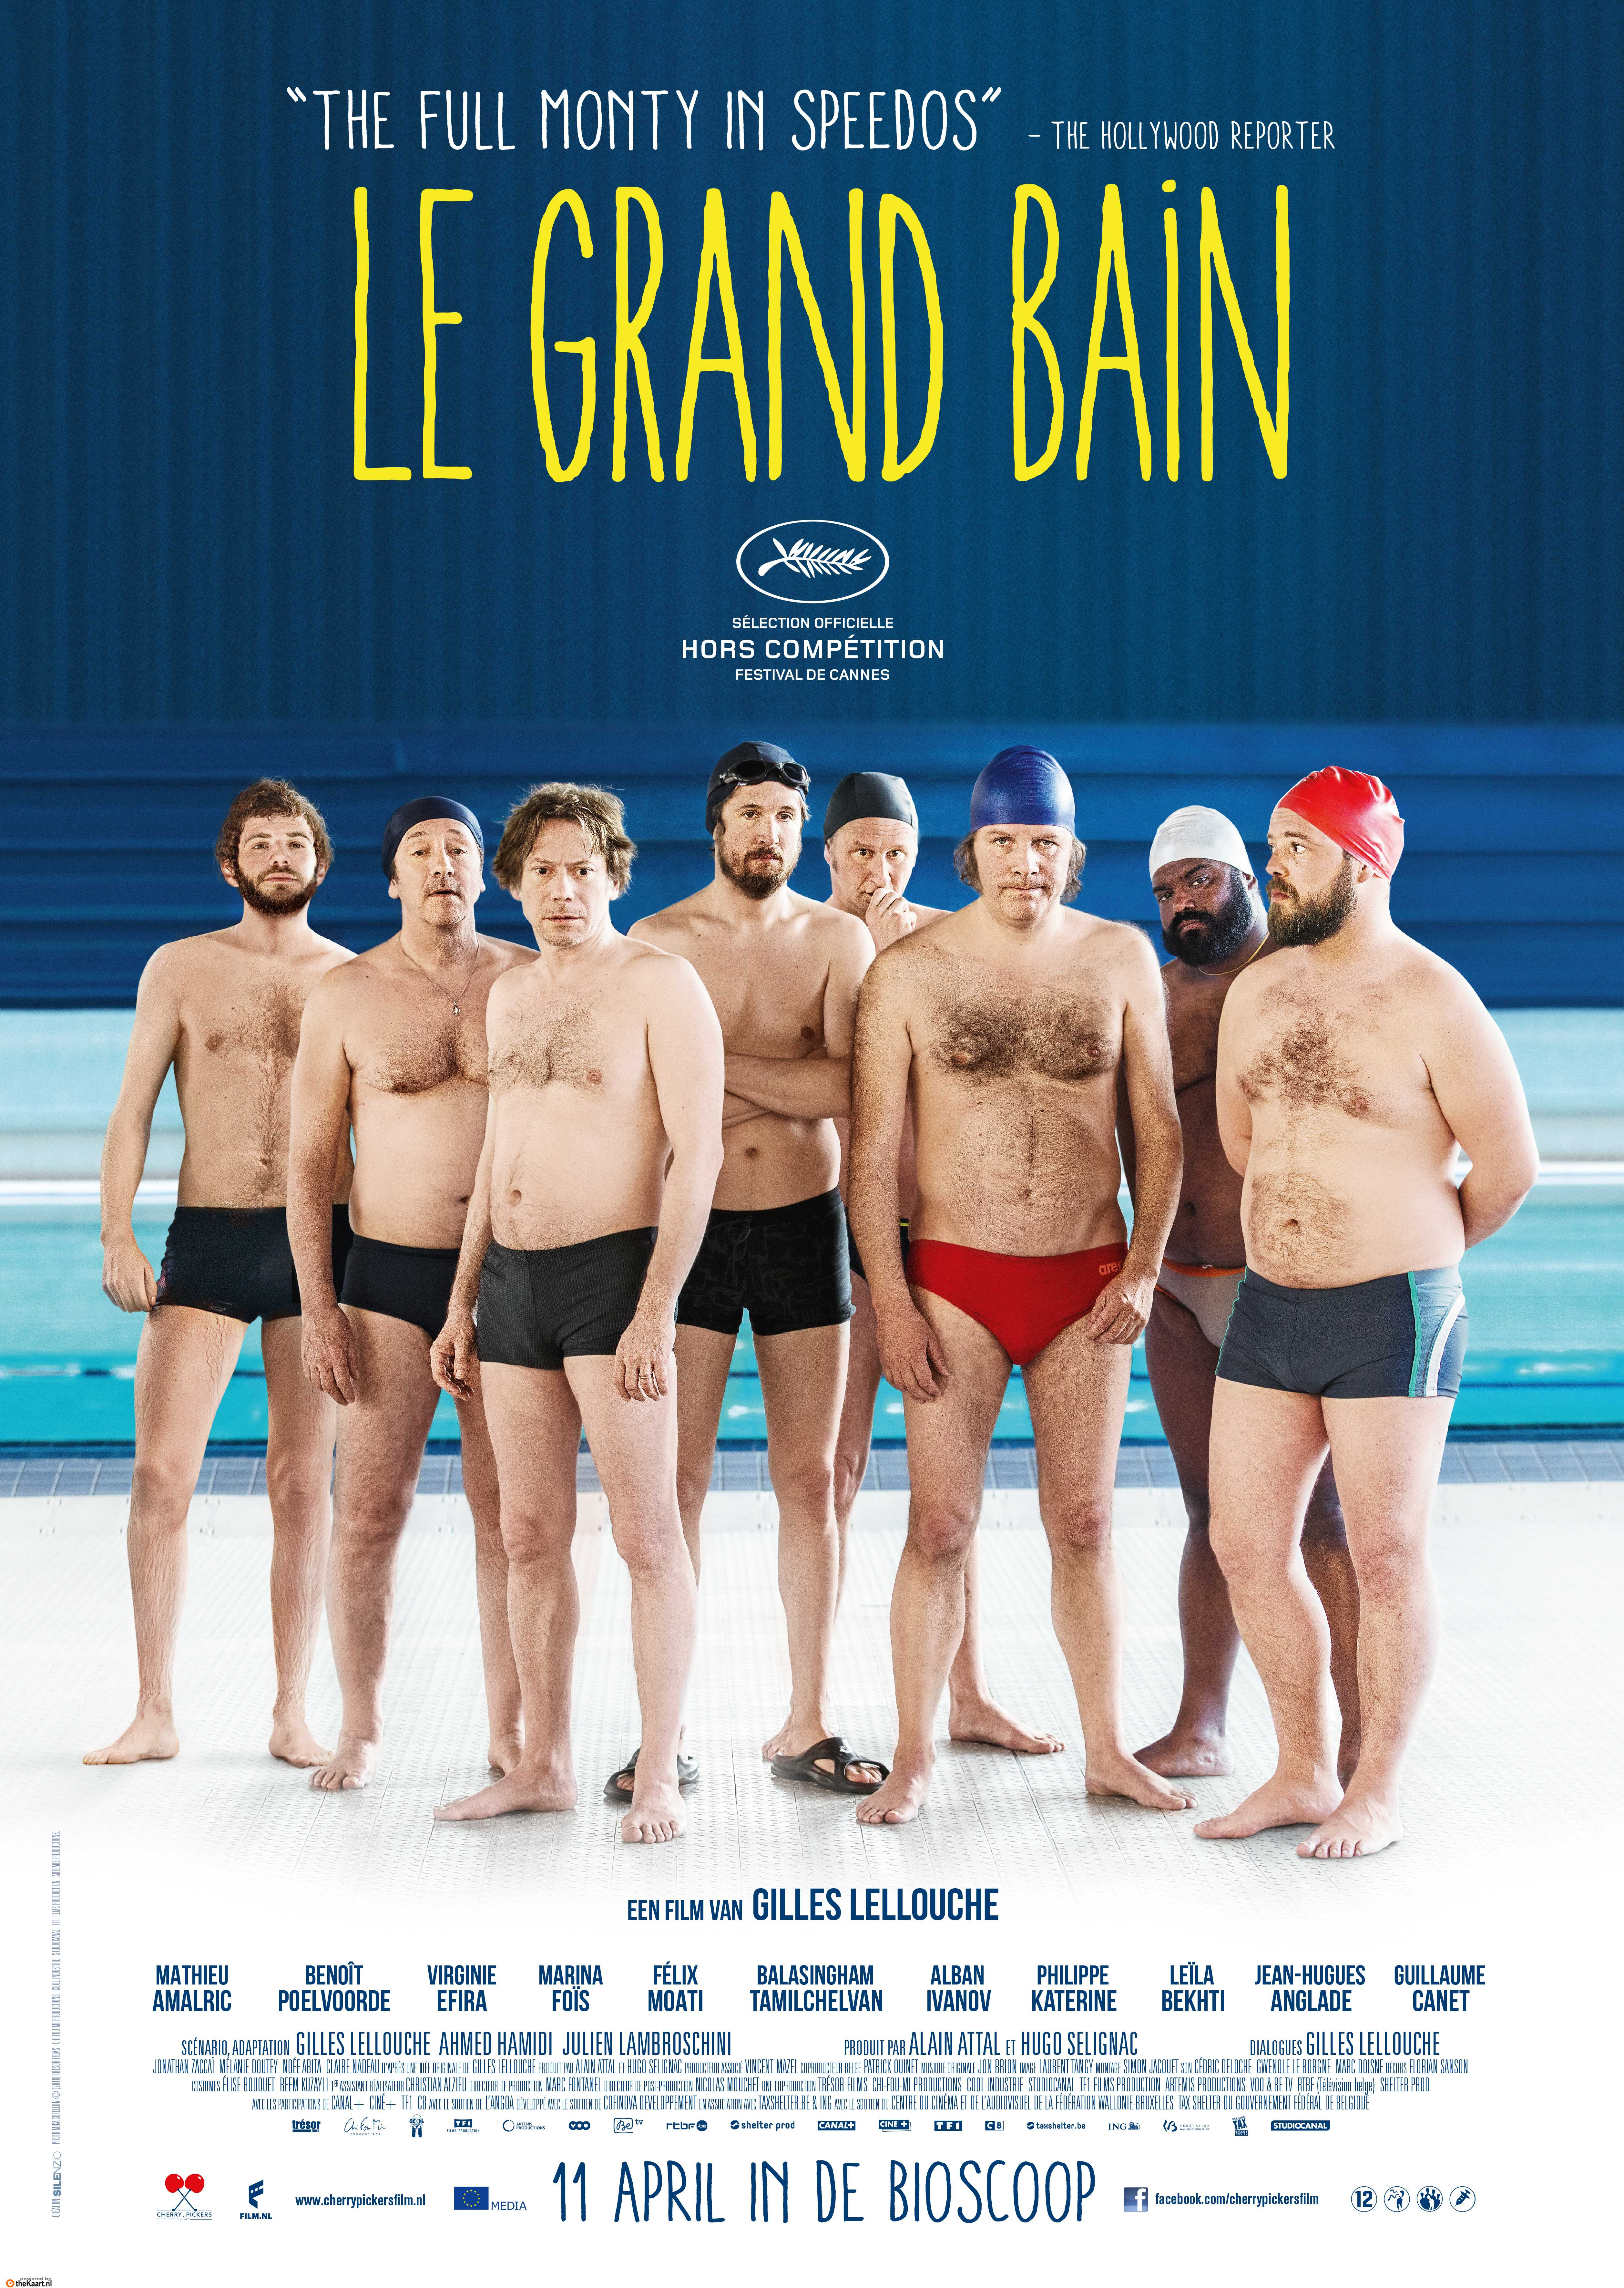 Le Grand Bain poster, © 2018 Cherry Pickers